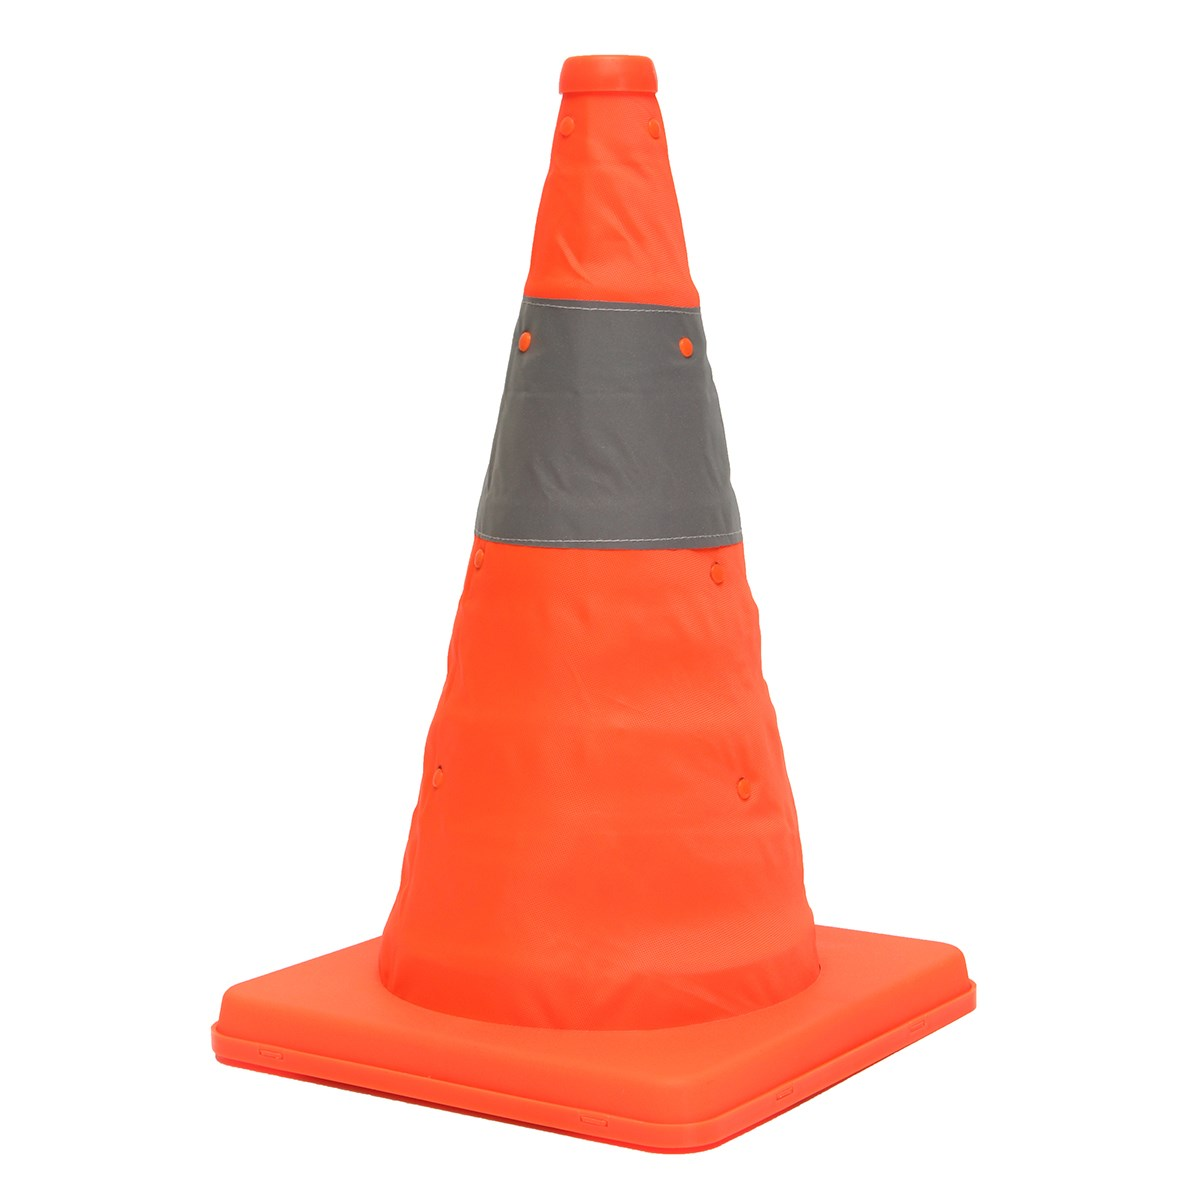 Folding Collapsible Orange Road Safety Cone Traffic Pop Up Parking Multi Purpose